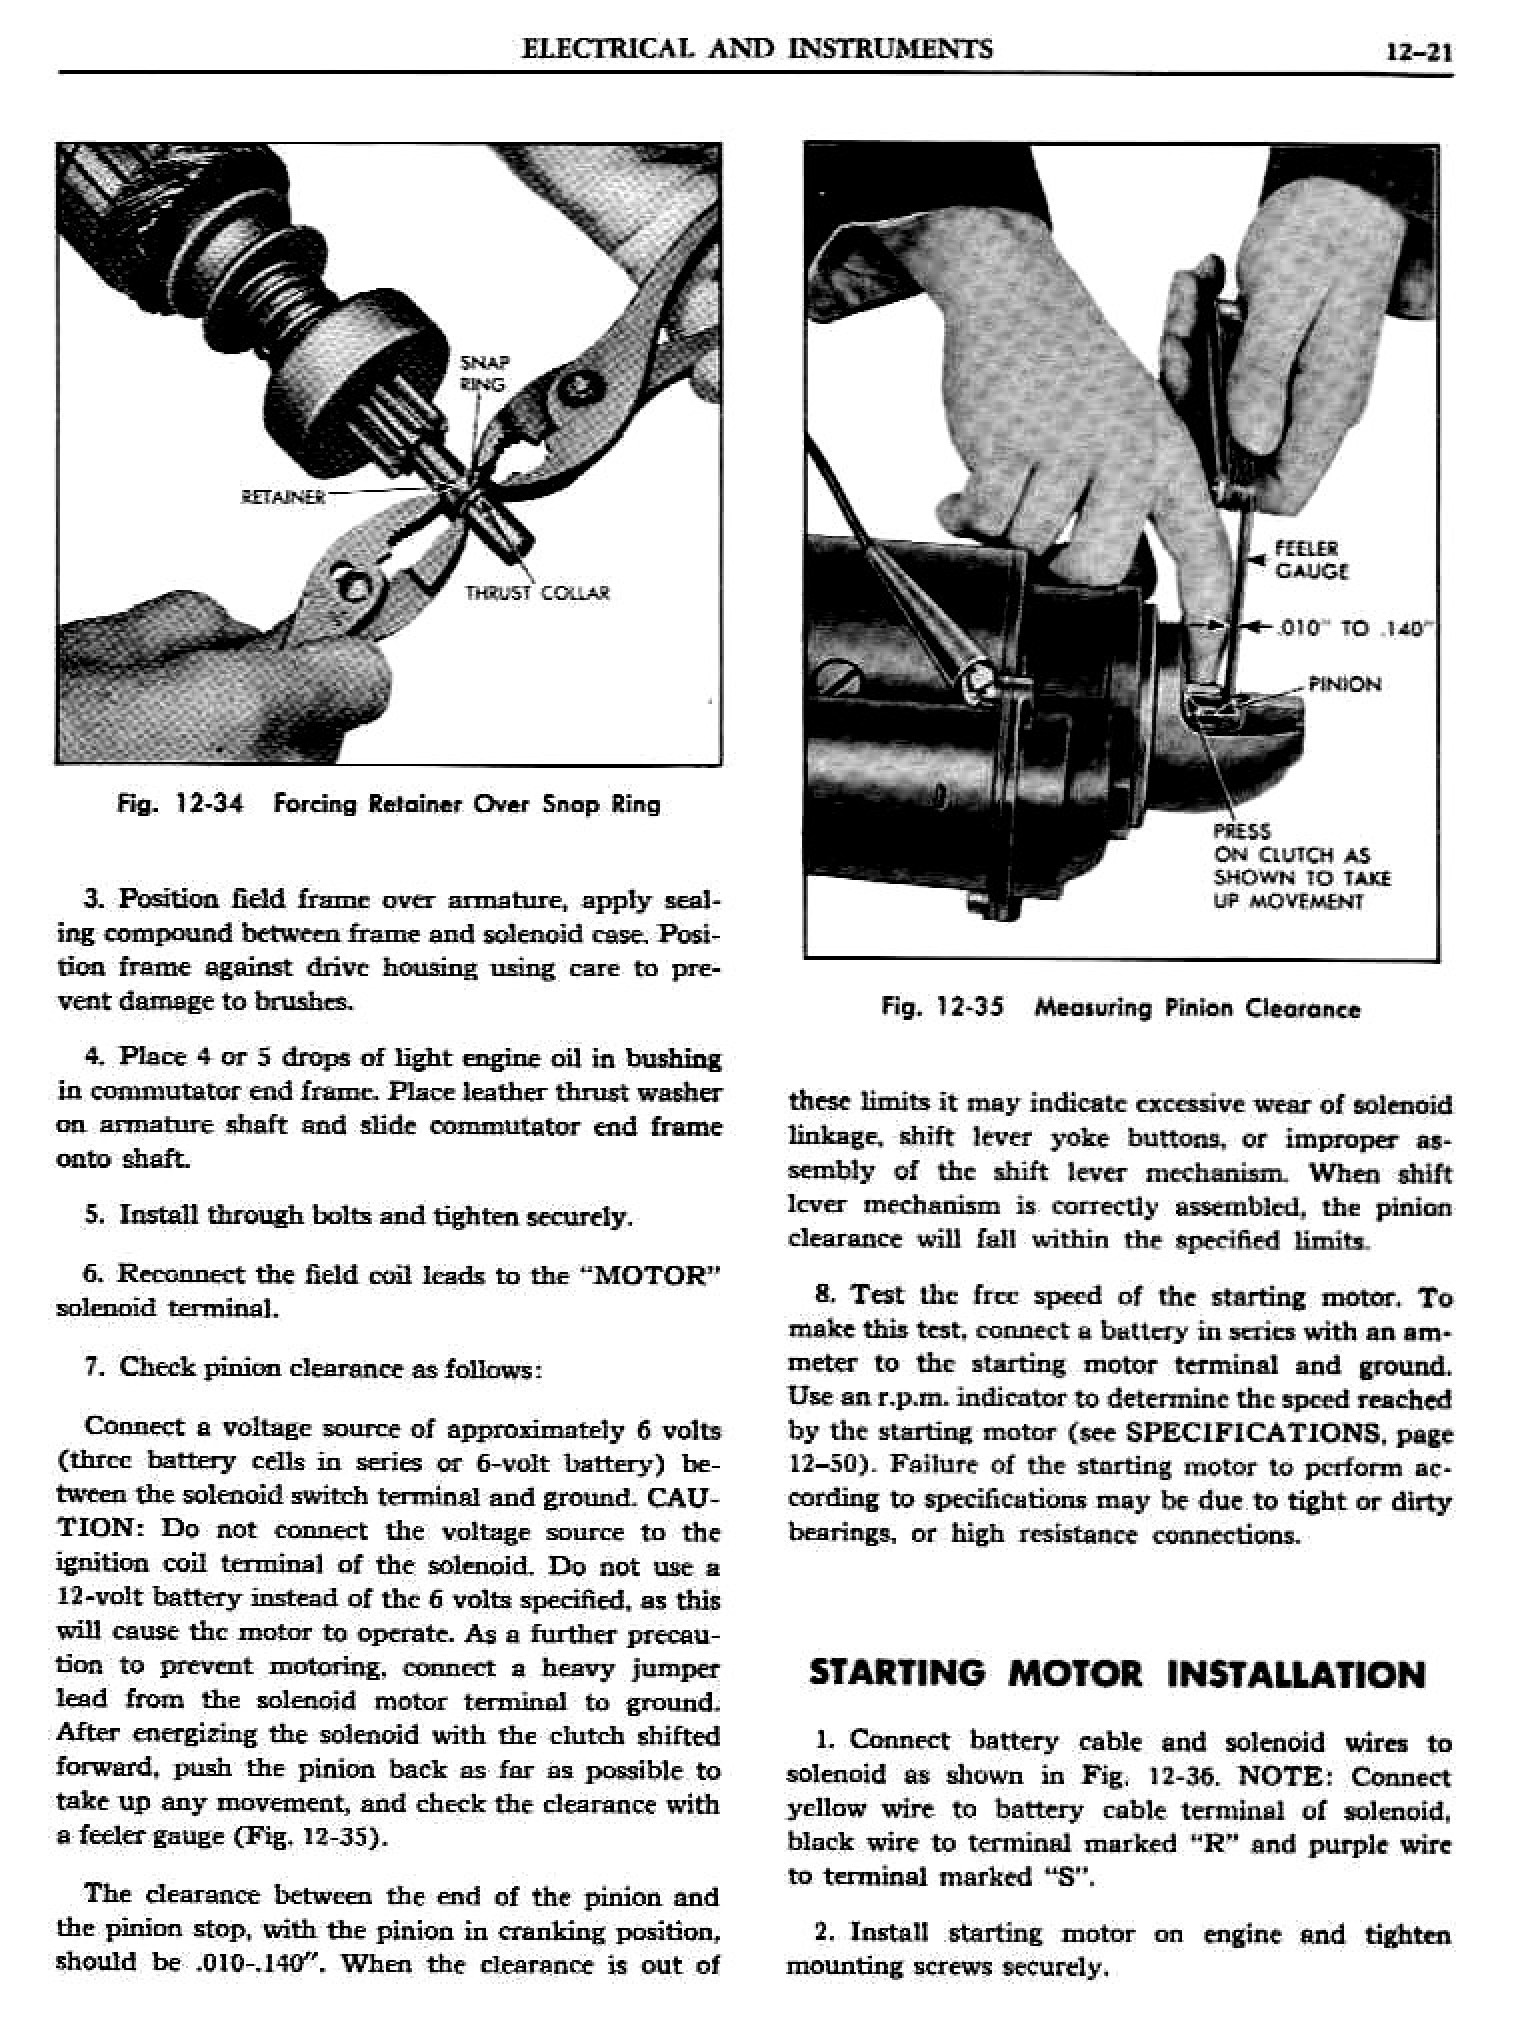 1956 Pontiac Shop Manual- Electrical Page 22 of 55